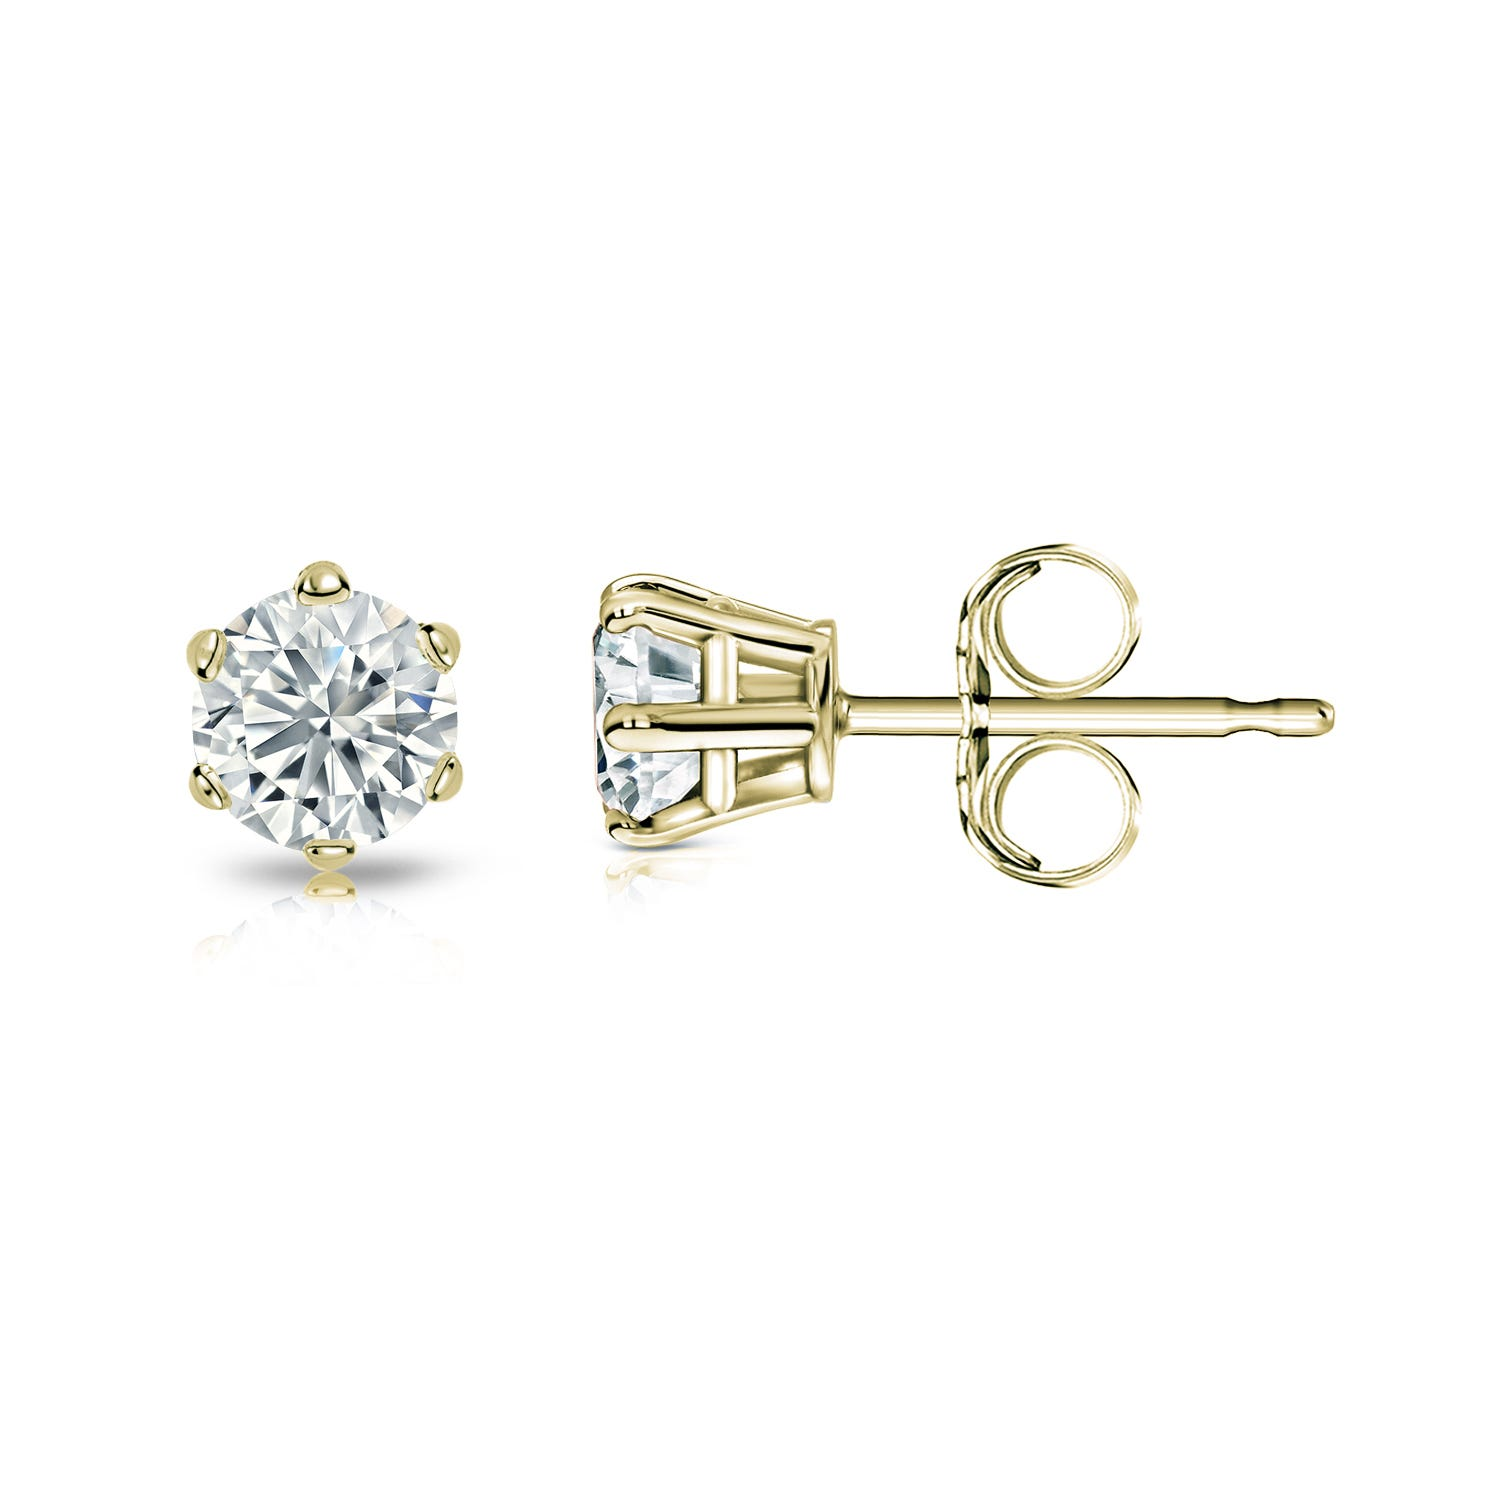 Round Diamond 1/7ctw. (IJ-VS2) Solitaire Stud 6-Prong Earrings in 14K Yellow Gold